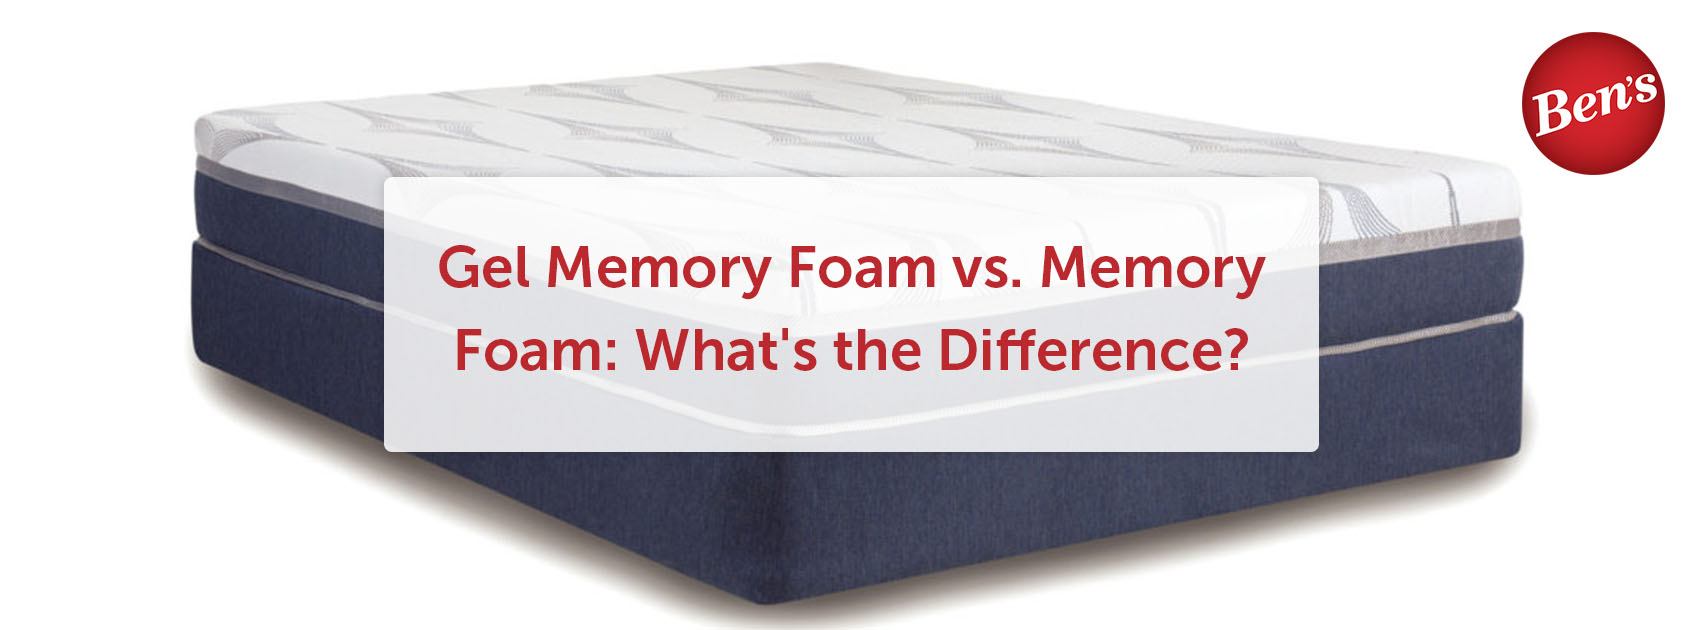 gel memory foam bed on a white background.